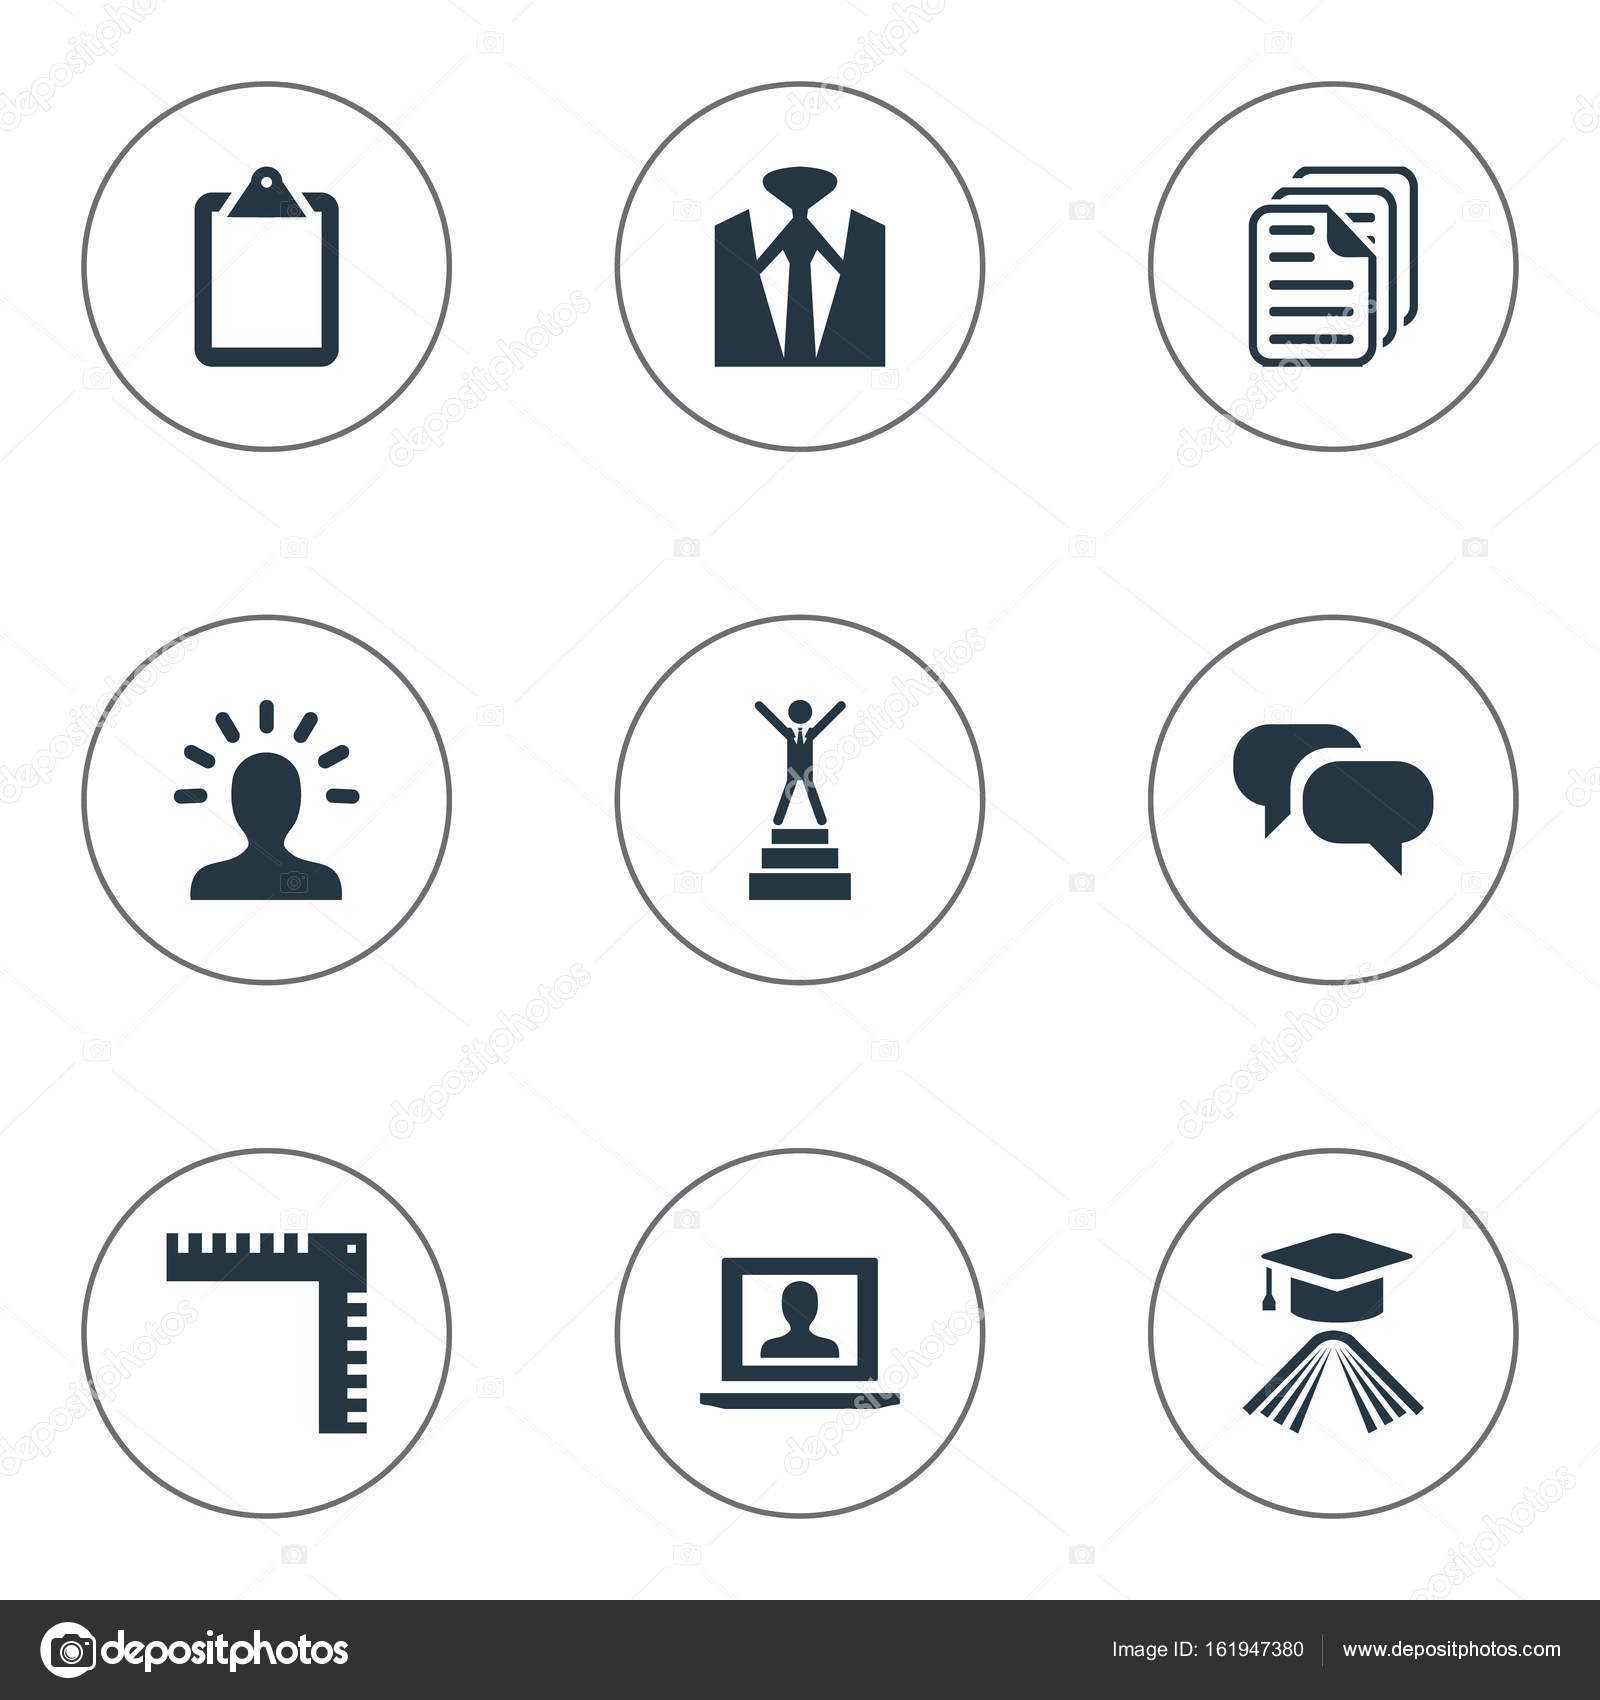 Vector illustration set of simple conference icons elements elements profile master degree discussion and other synonyms message measurement and documents vector illustration set of simple conference icons biocorpaavc